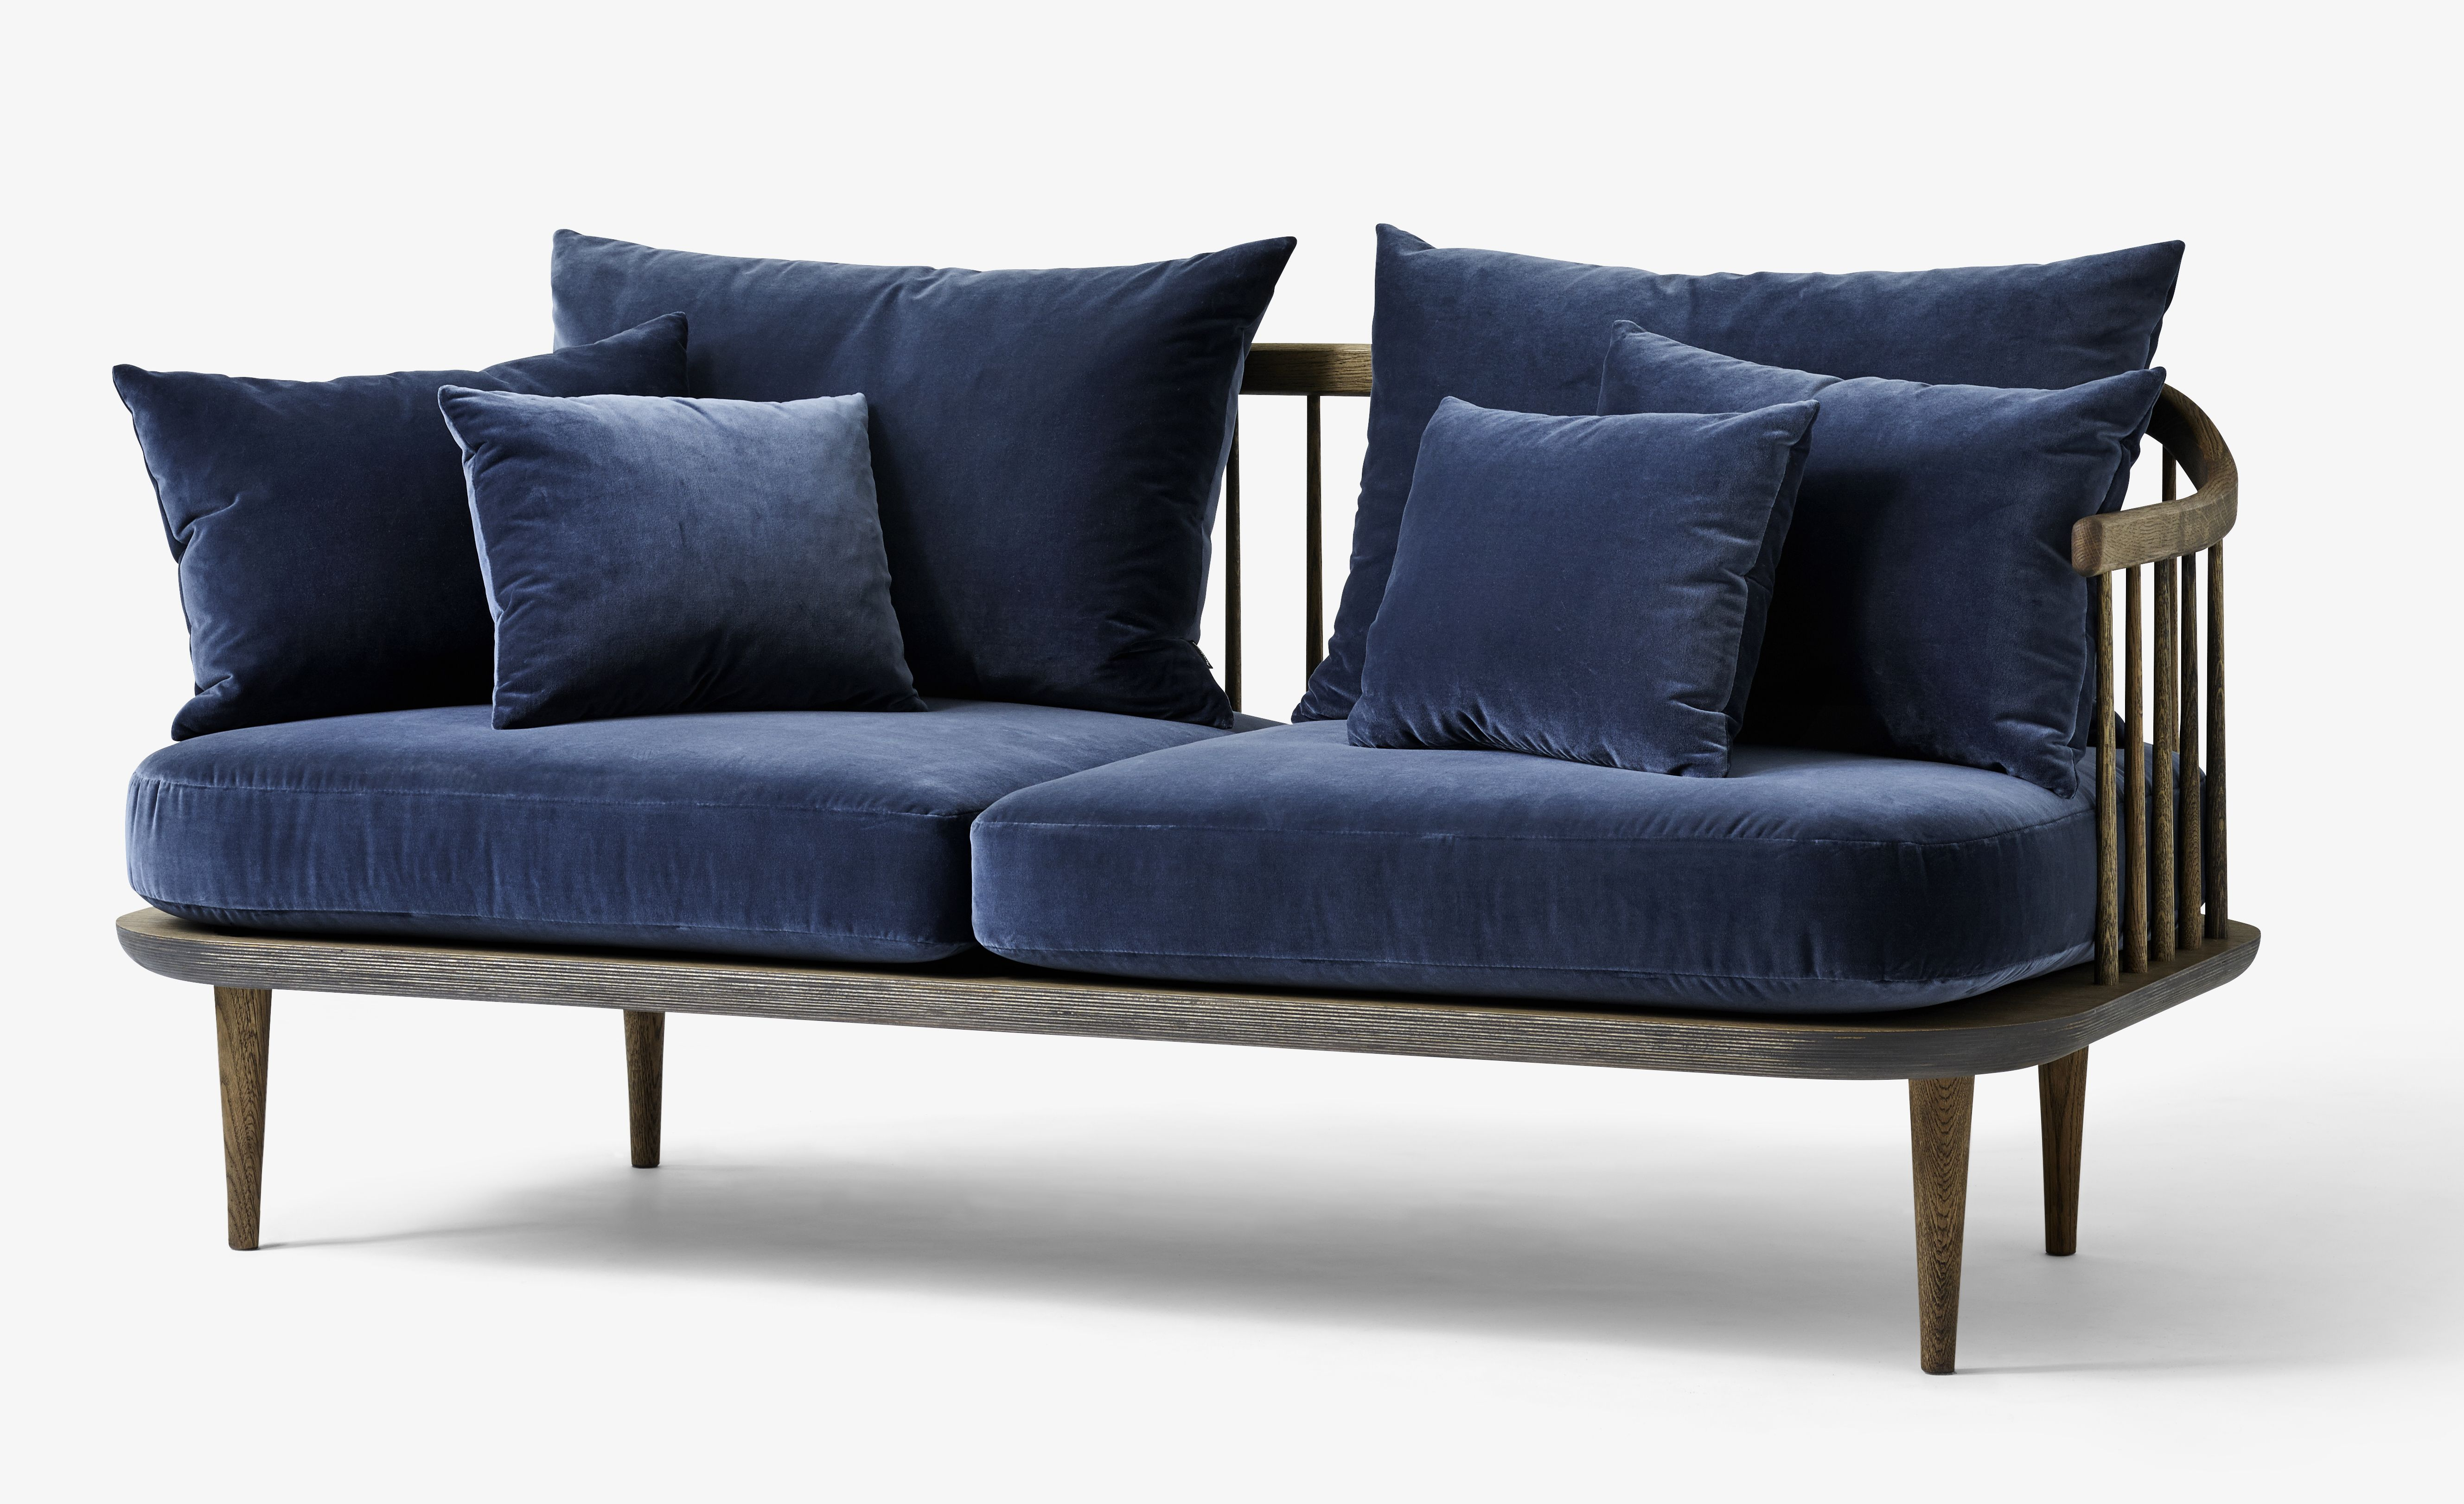 Divano Chester One Frau Prezzo Kvadrat Harald 3 Upholstery Pinterest Sofa Furniture